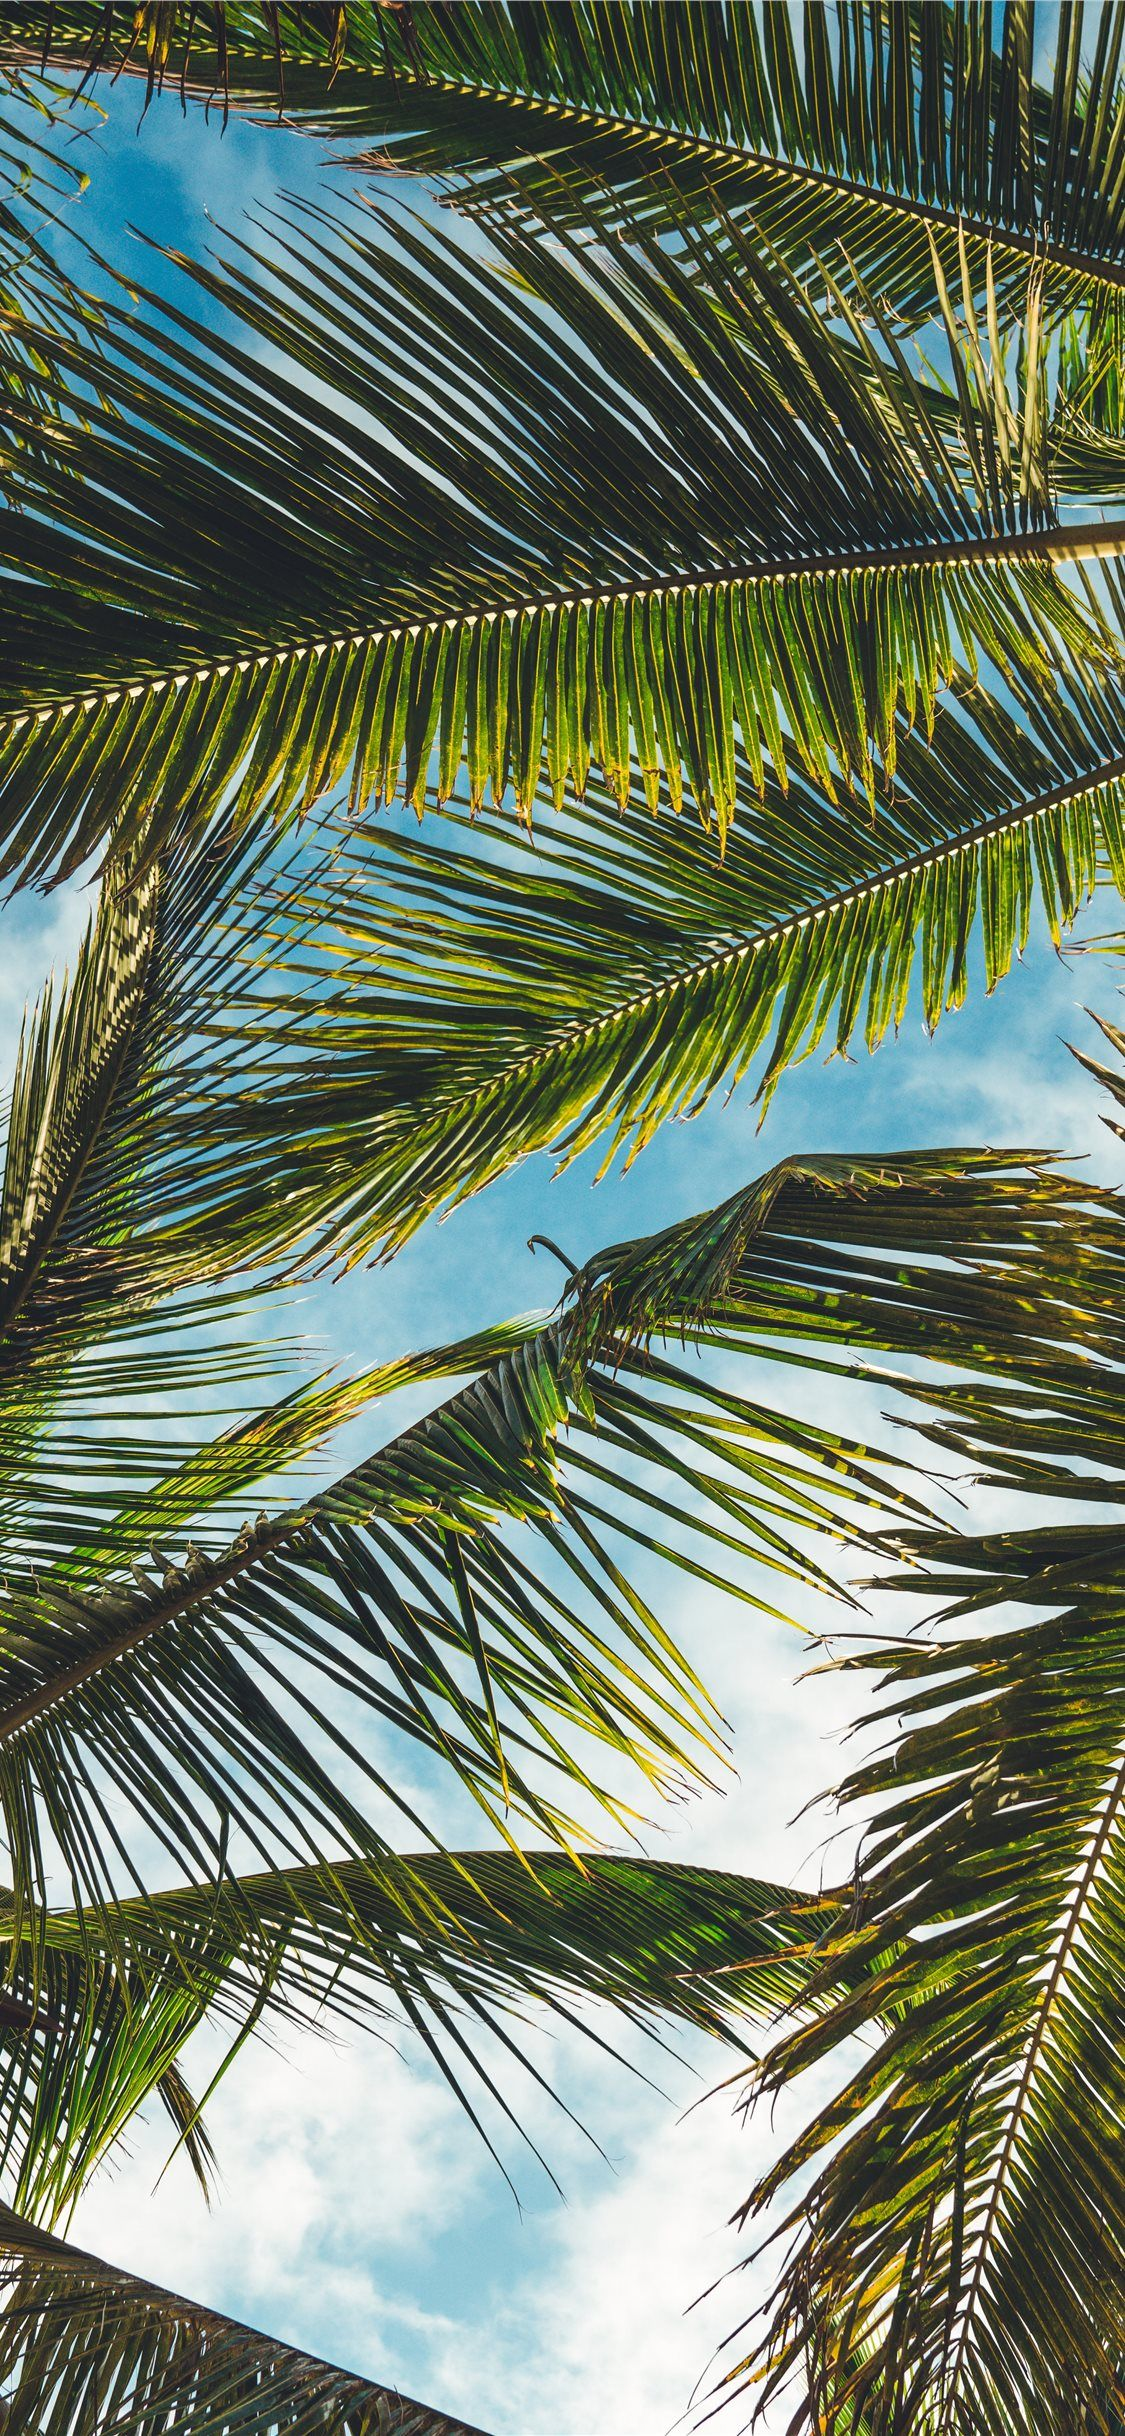 Coconut Tree Leaves Under Blue Sky During Daytime Tree Palmtree Tropical Leaf Nature Iphonex In 2020 Palm Trees Wallpaper Palm Tree Pictures Palm Tree Silhouette